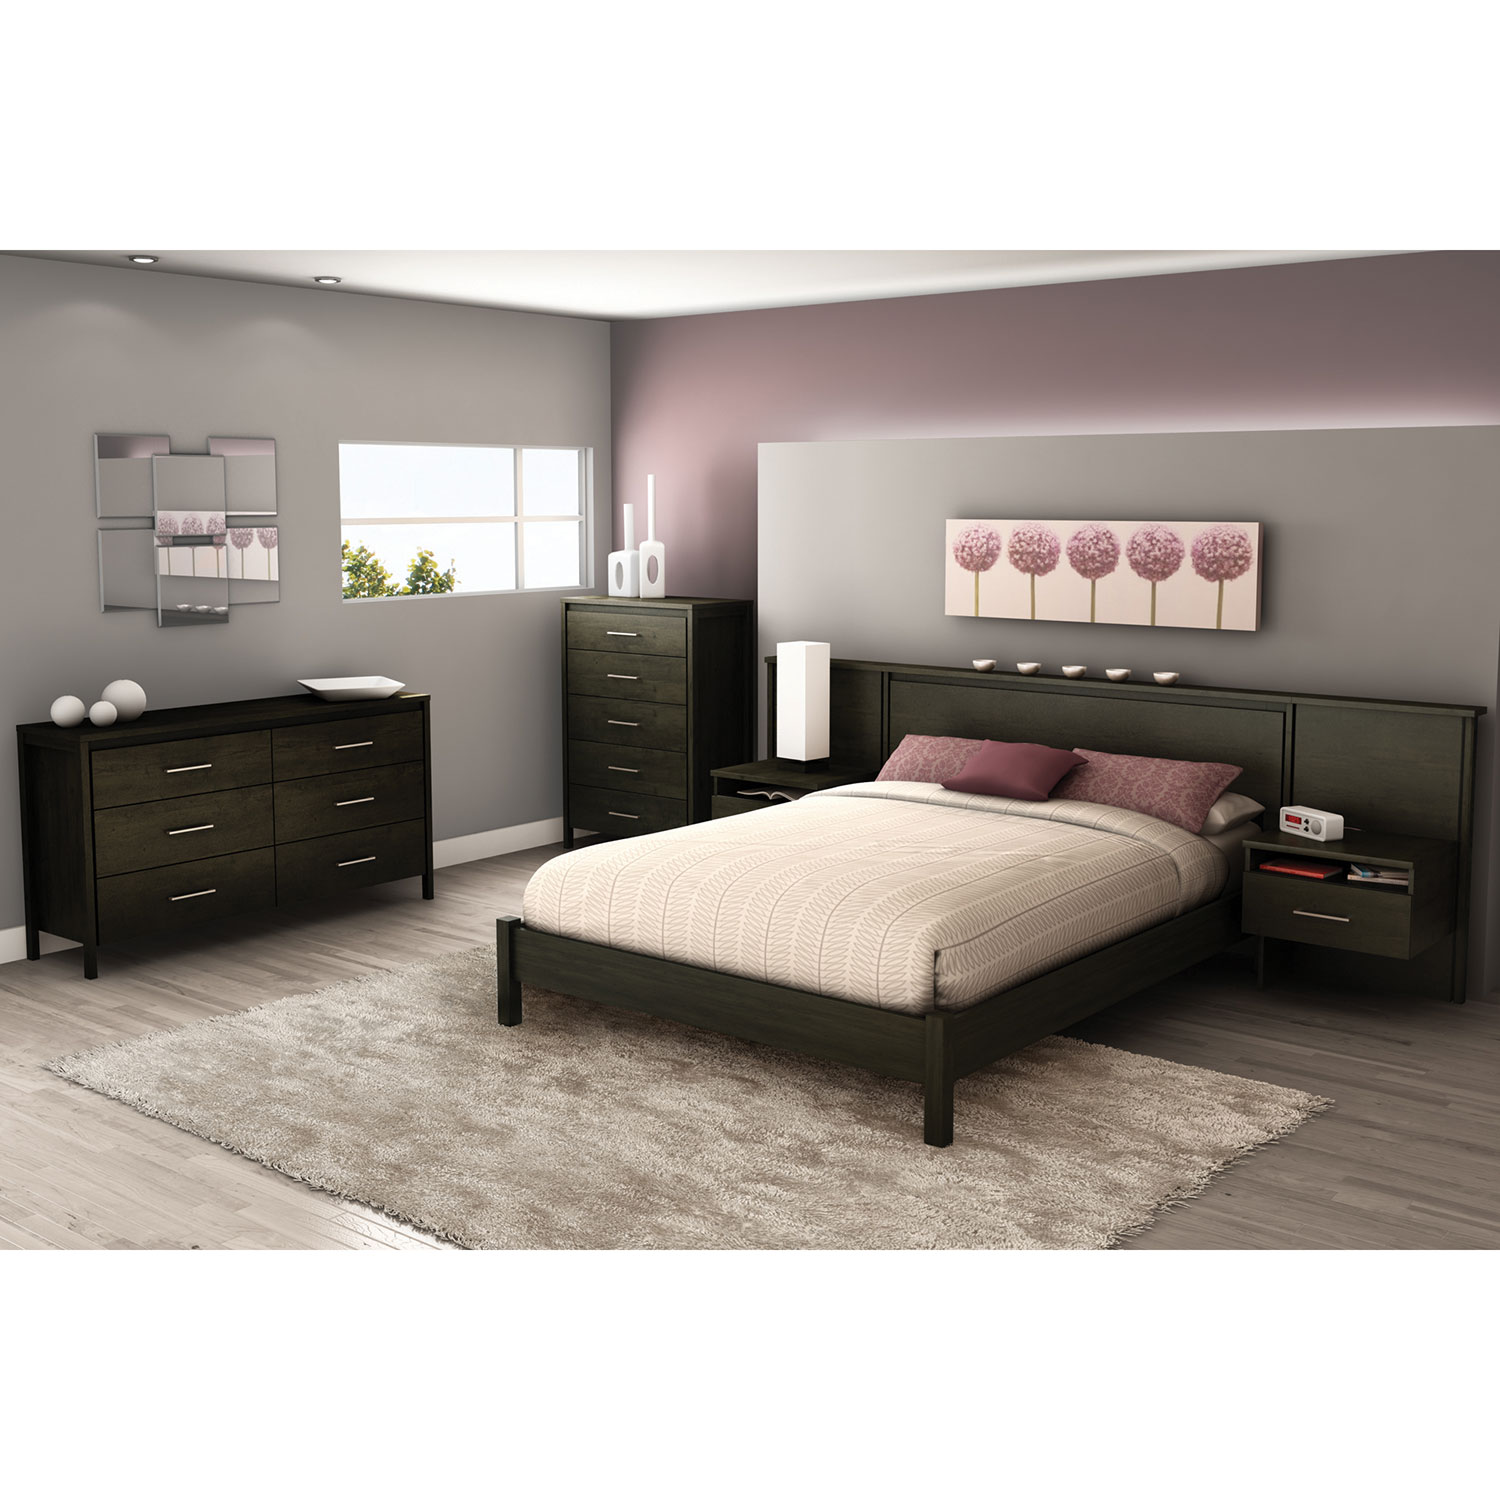 gravity contemporary platform bed  queen  ebony  beds  bed  - gravity contemporary platform bed  queen  ebony  beds  bed frames best buy canada